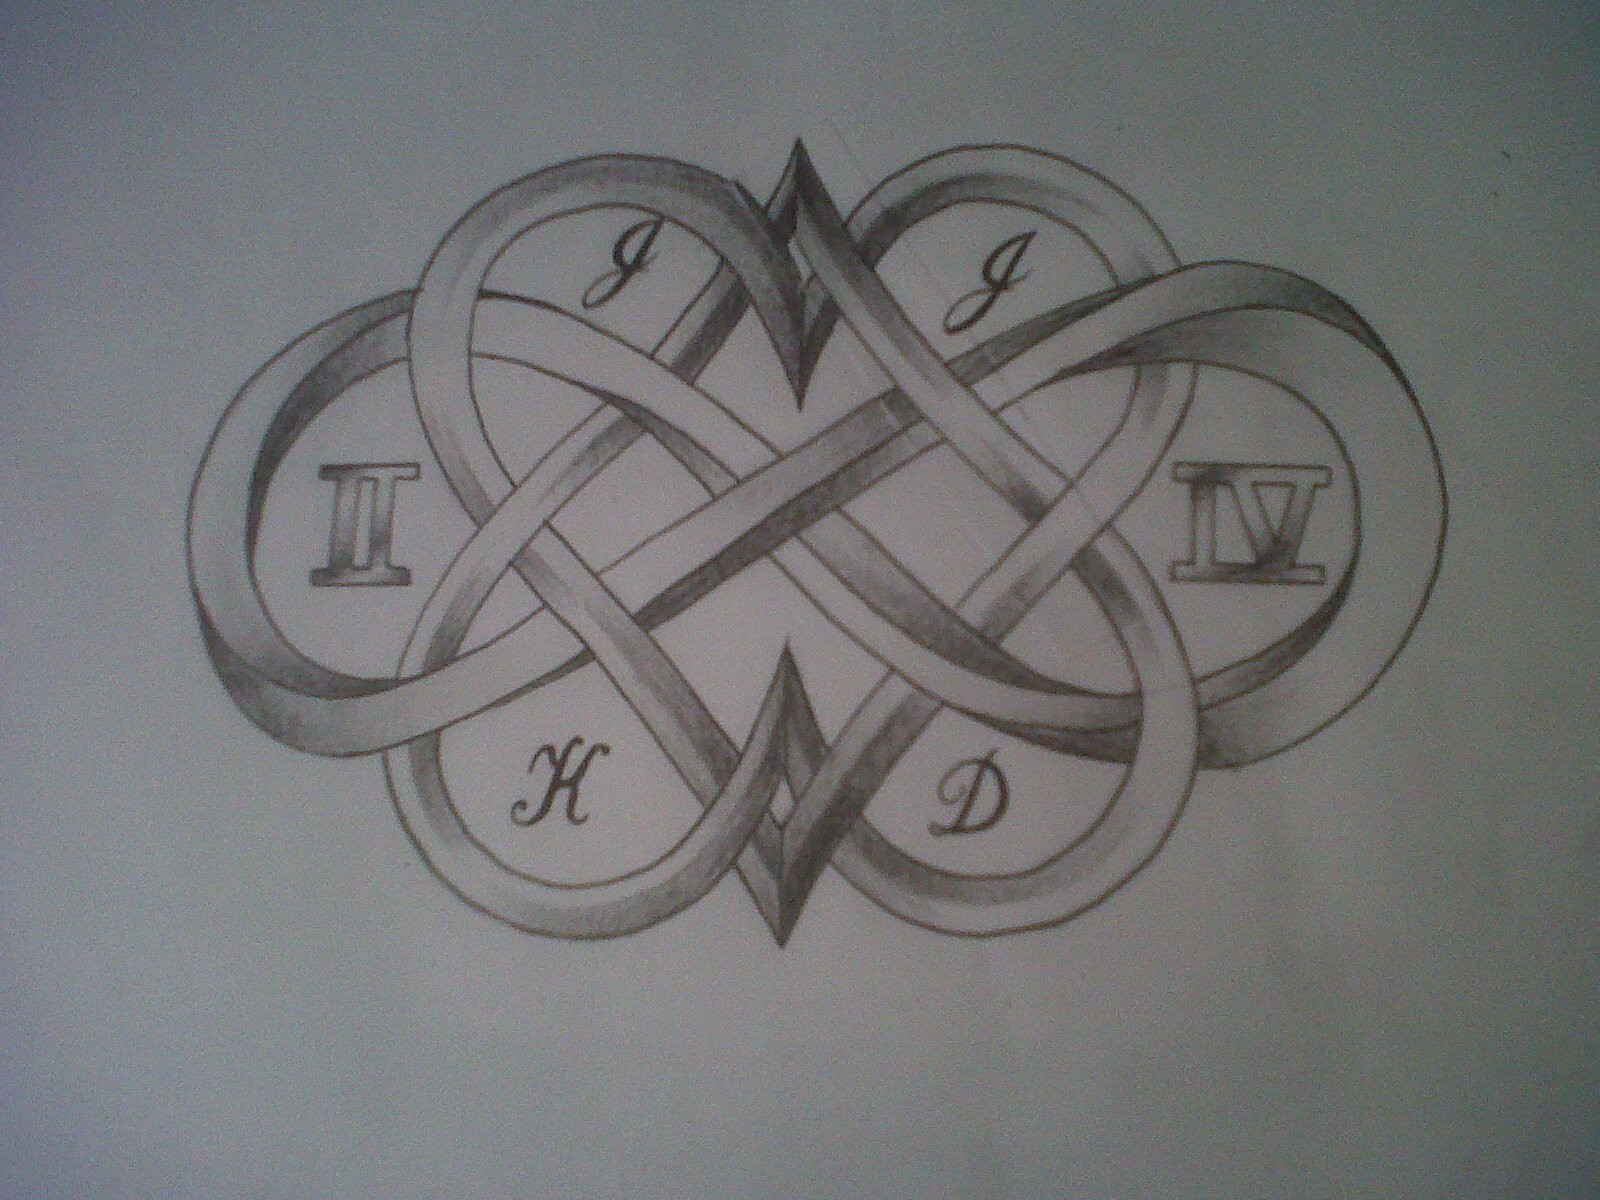 Celtic Tattoos - History and Meaning - What's Your Sign